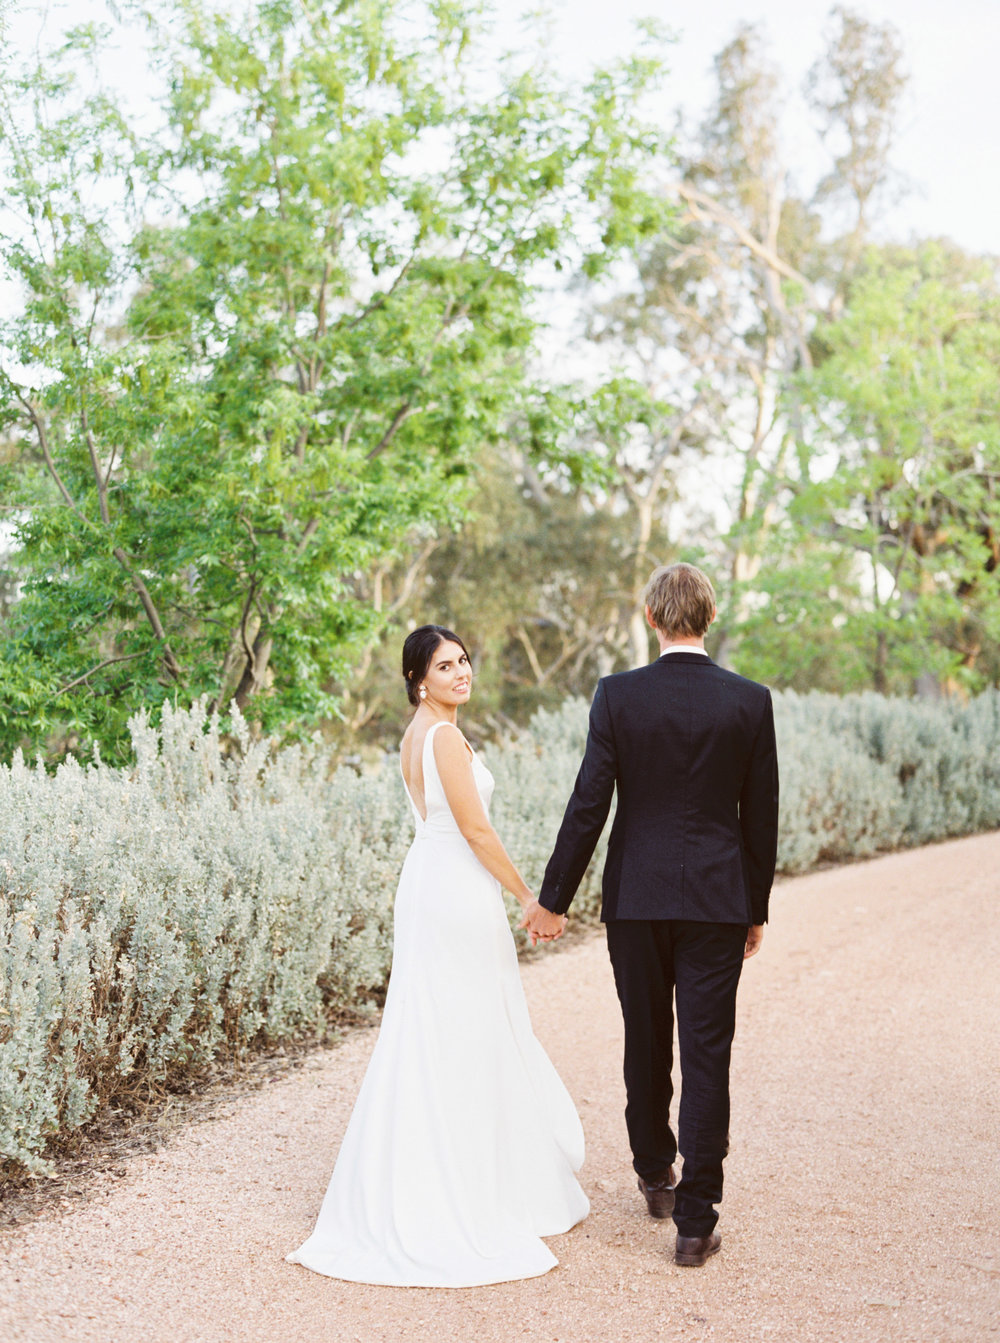 00060- Olive Tree Mediterranean Wedding in Mudgee NSW Australia Fine Art Film Wedding Lifestyle Photographer Sheri McMahon_.jpg